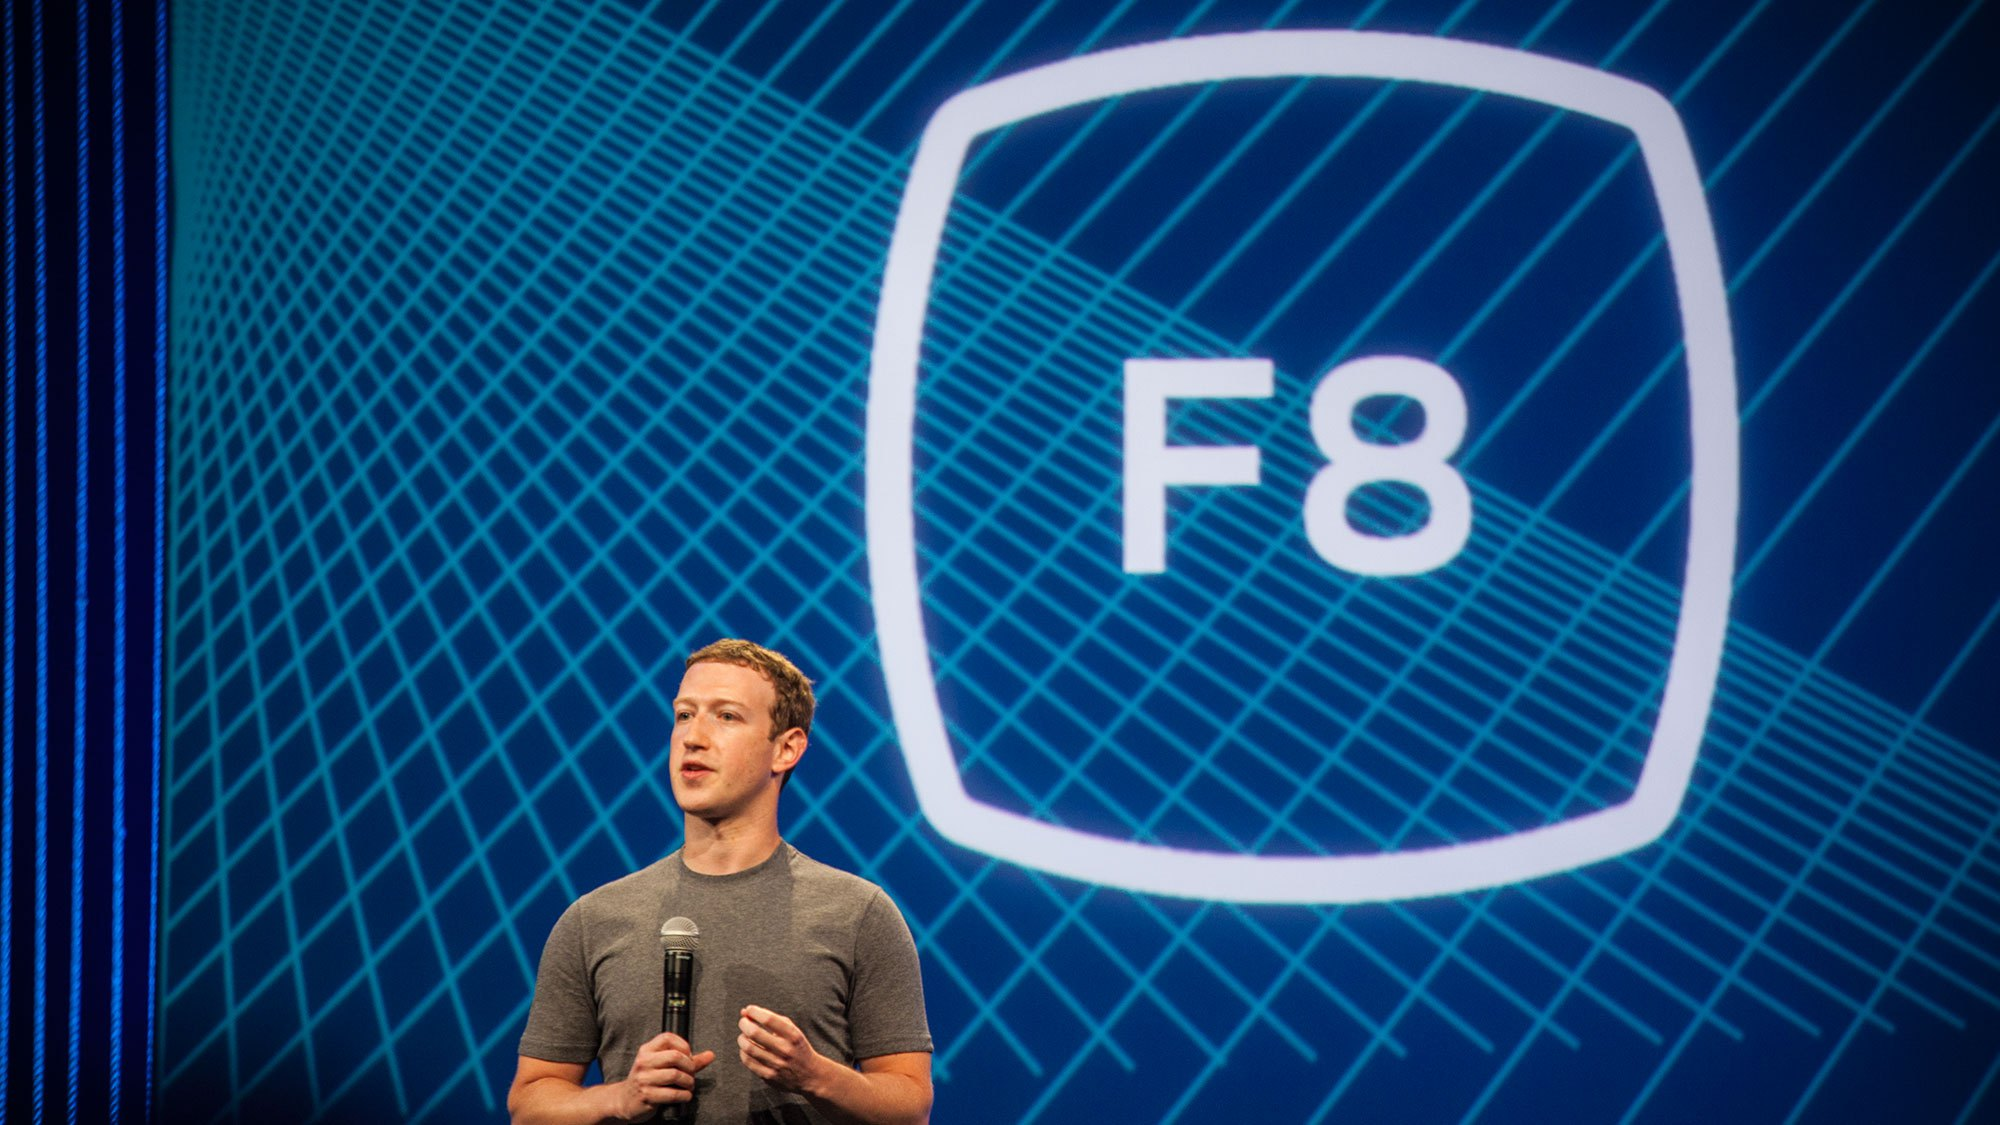 facebook-ecosystem-f8-developer-conference-pc-tablet-media